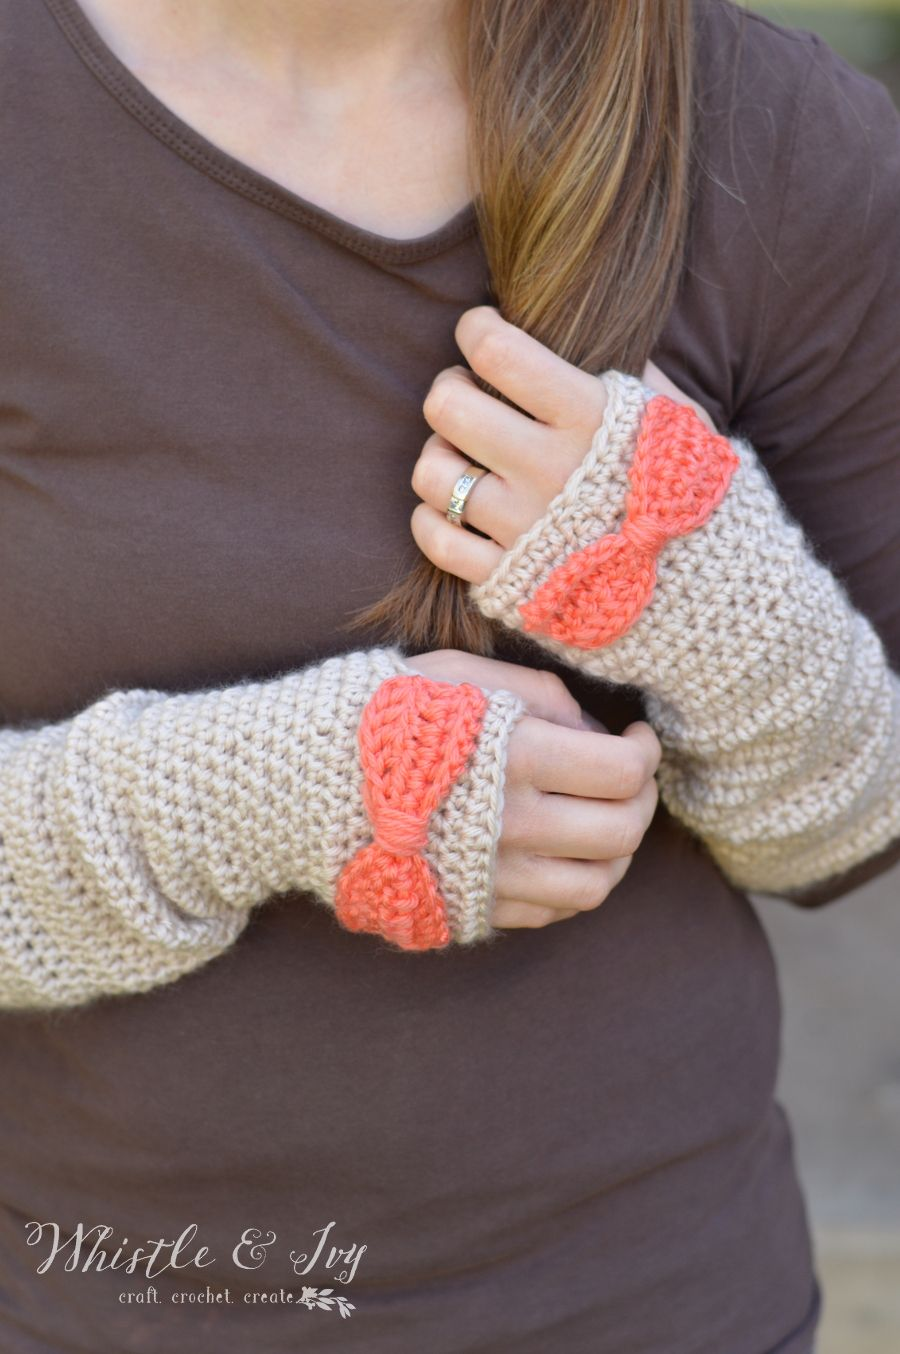 FREE Crochet Pattern - Dainty Bow Arm Warmers | Crochet arm warmers ...